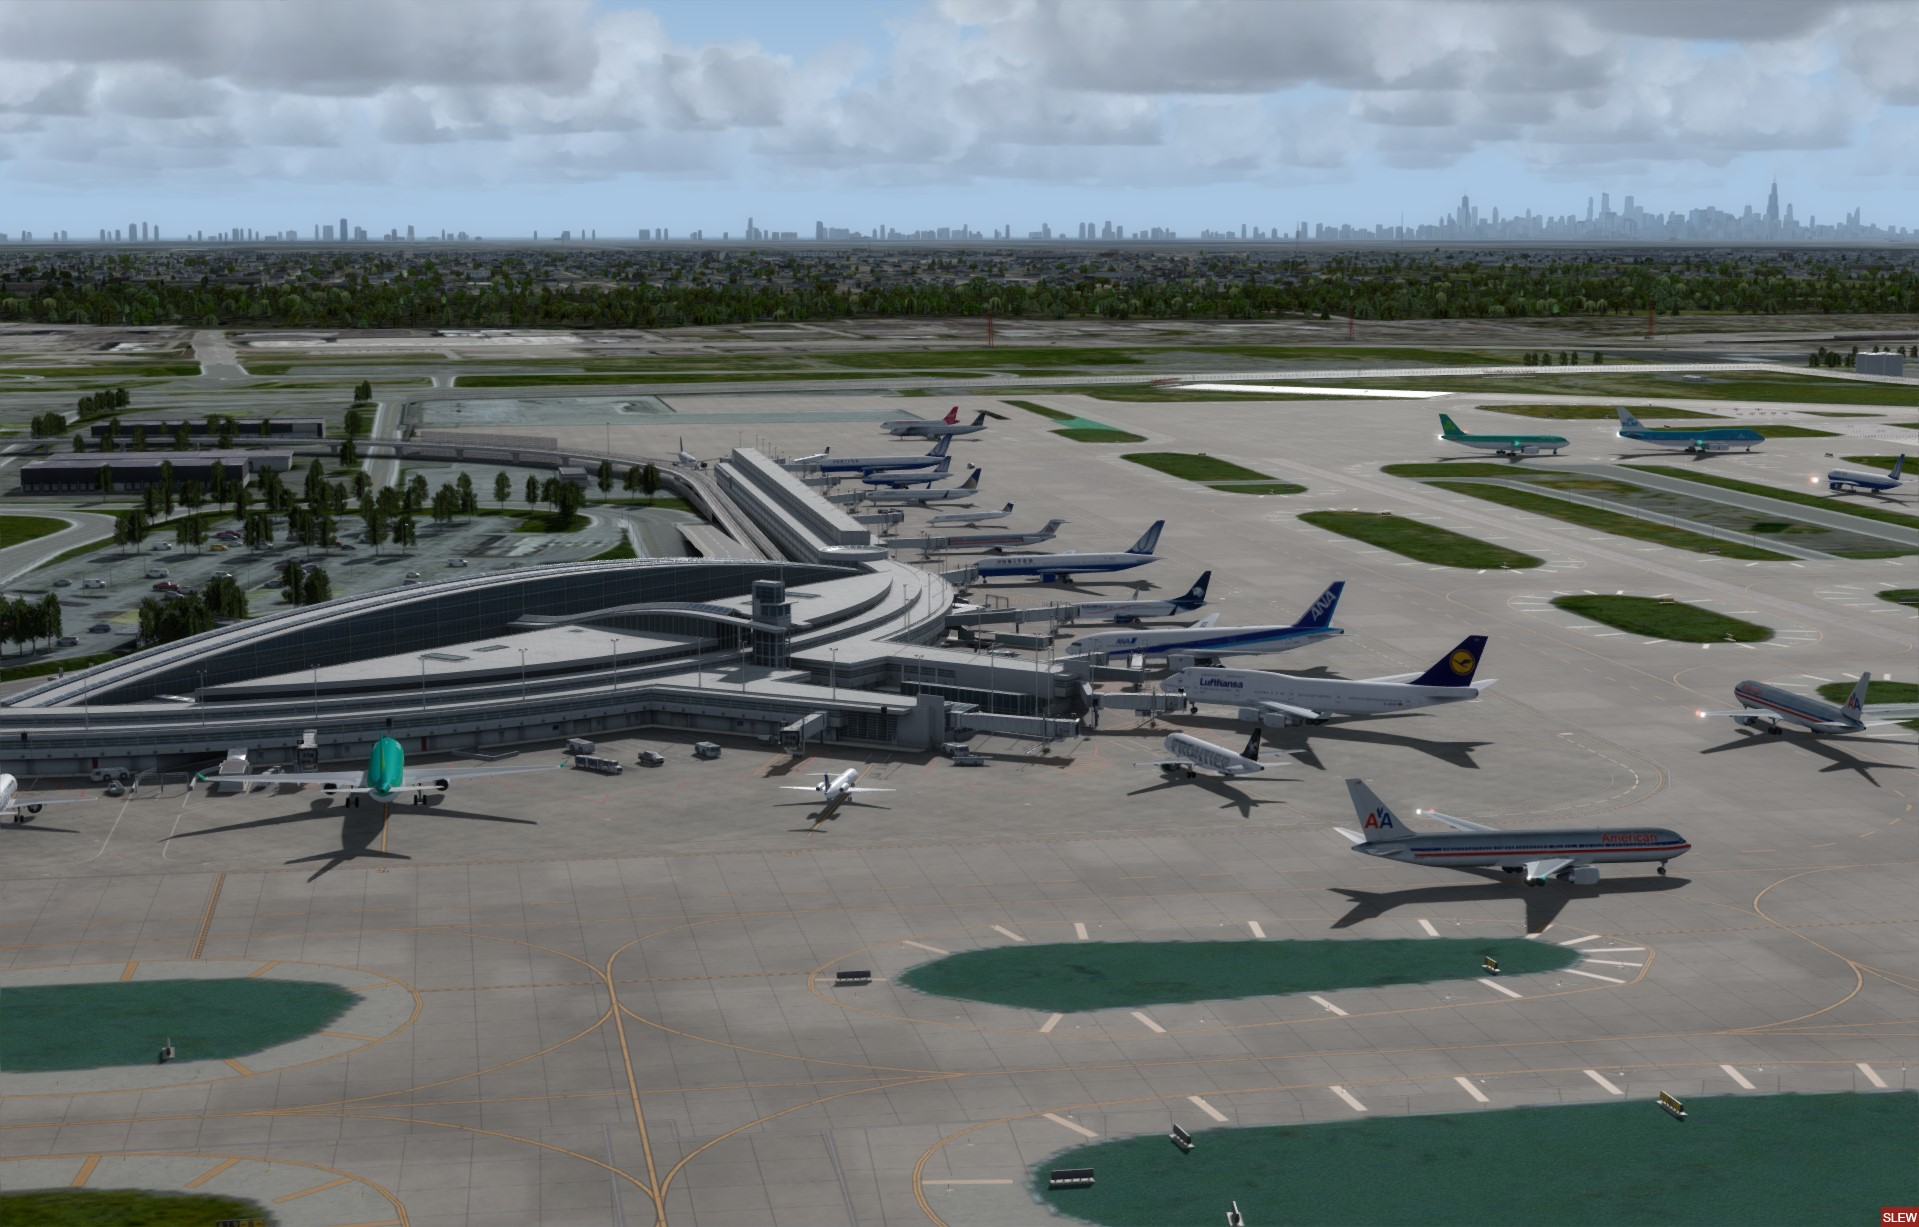 FSDREAMTEAM - CHICAGO O'HARE VERSION 2 - 2019 P3D4.4+